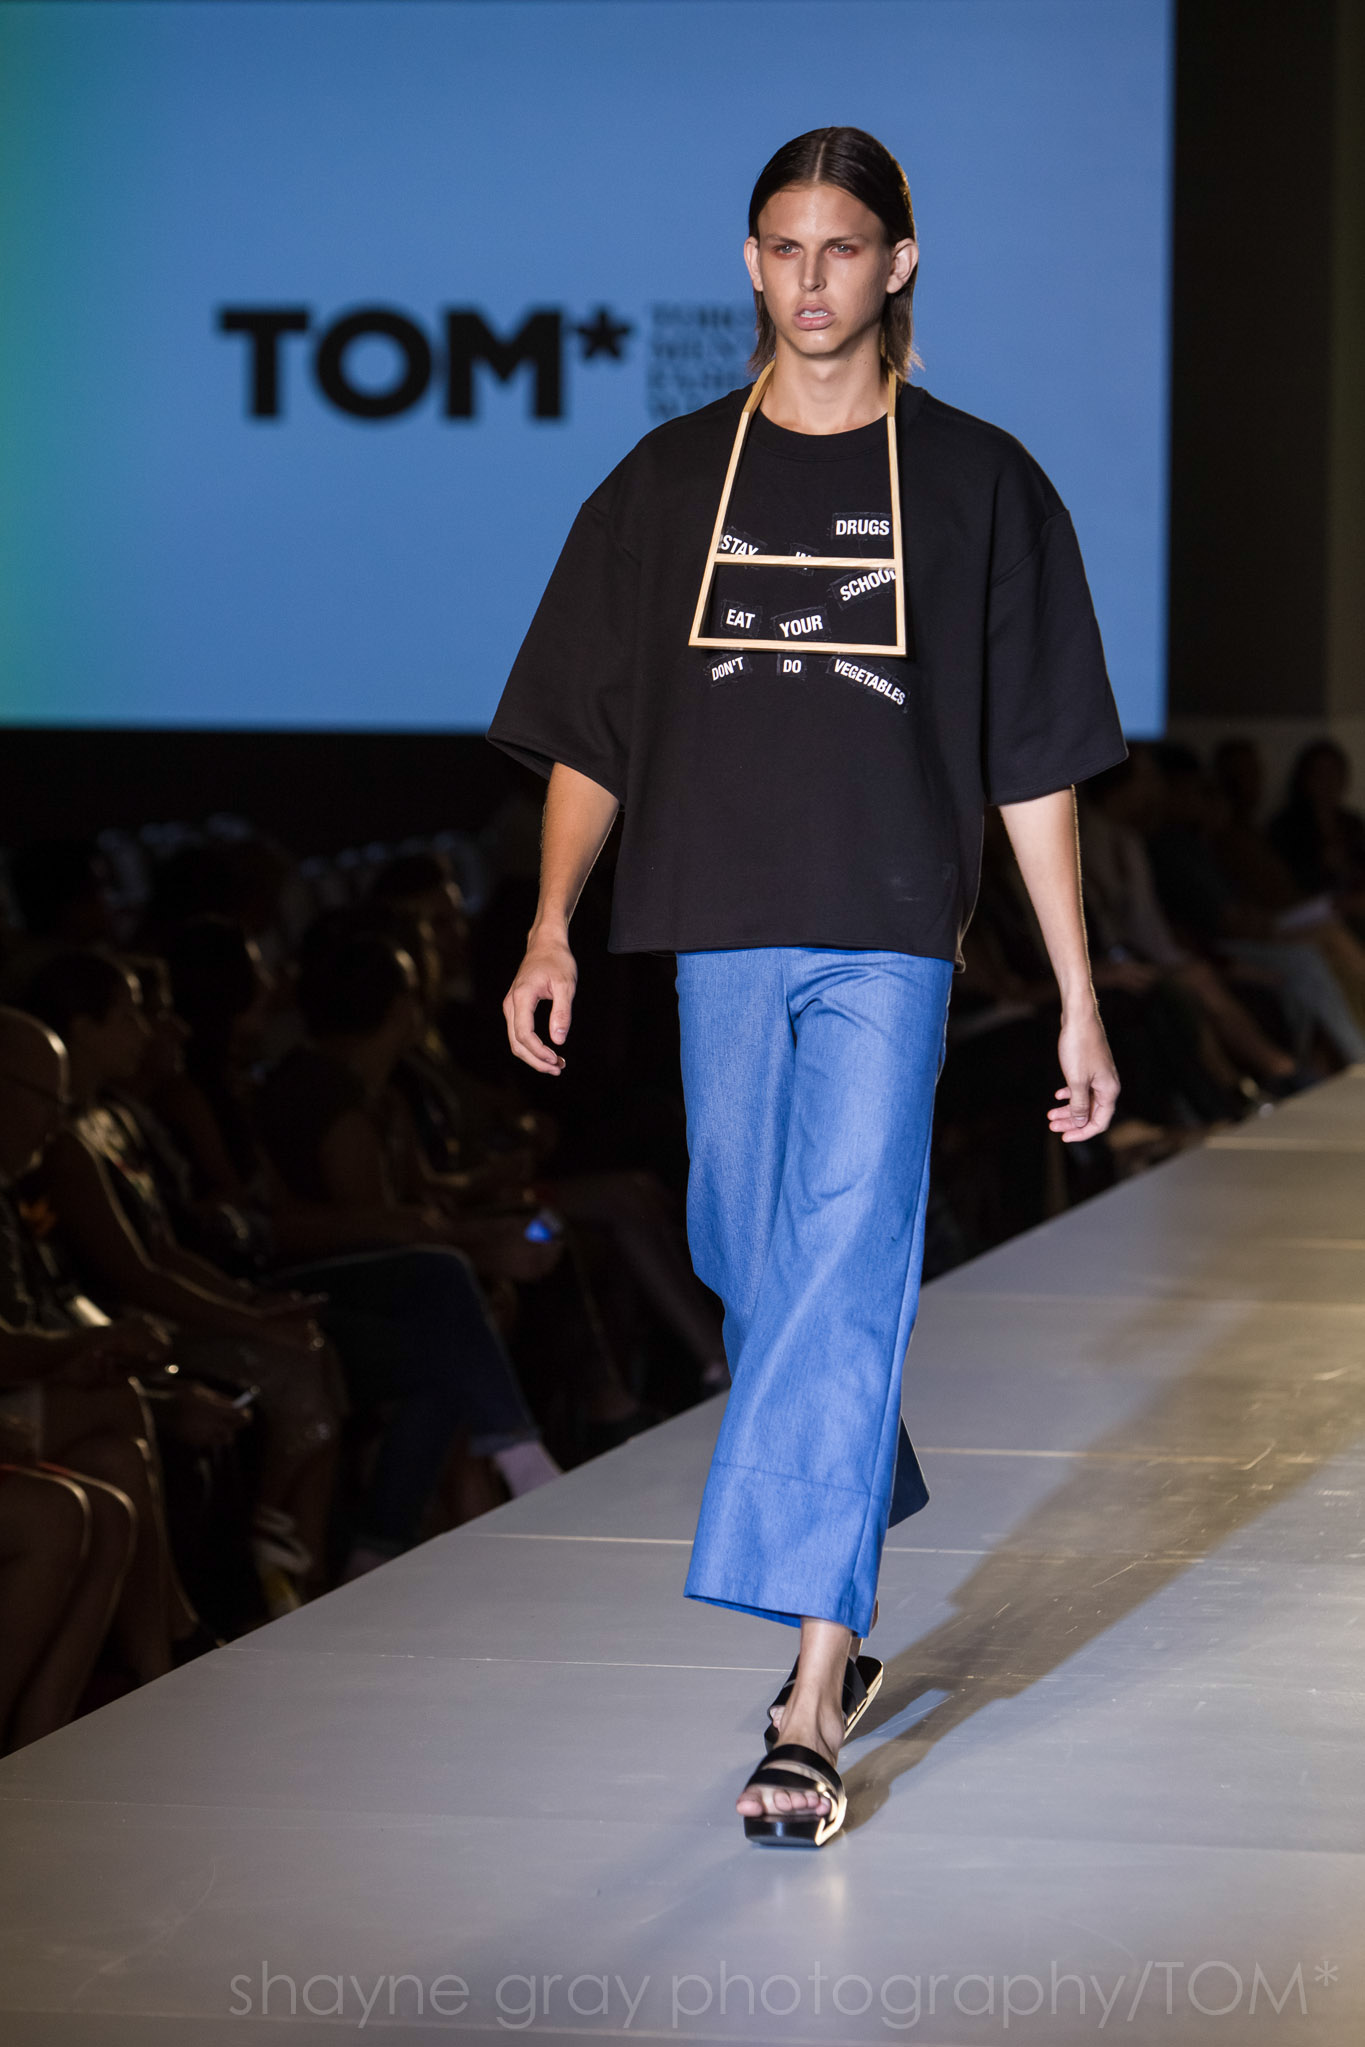 Shayne-Gray-Toronto-men's-fashion_week-TOM-wrkdept-8711.jpg